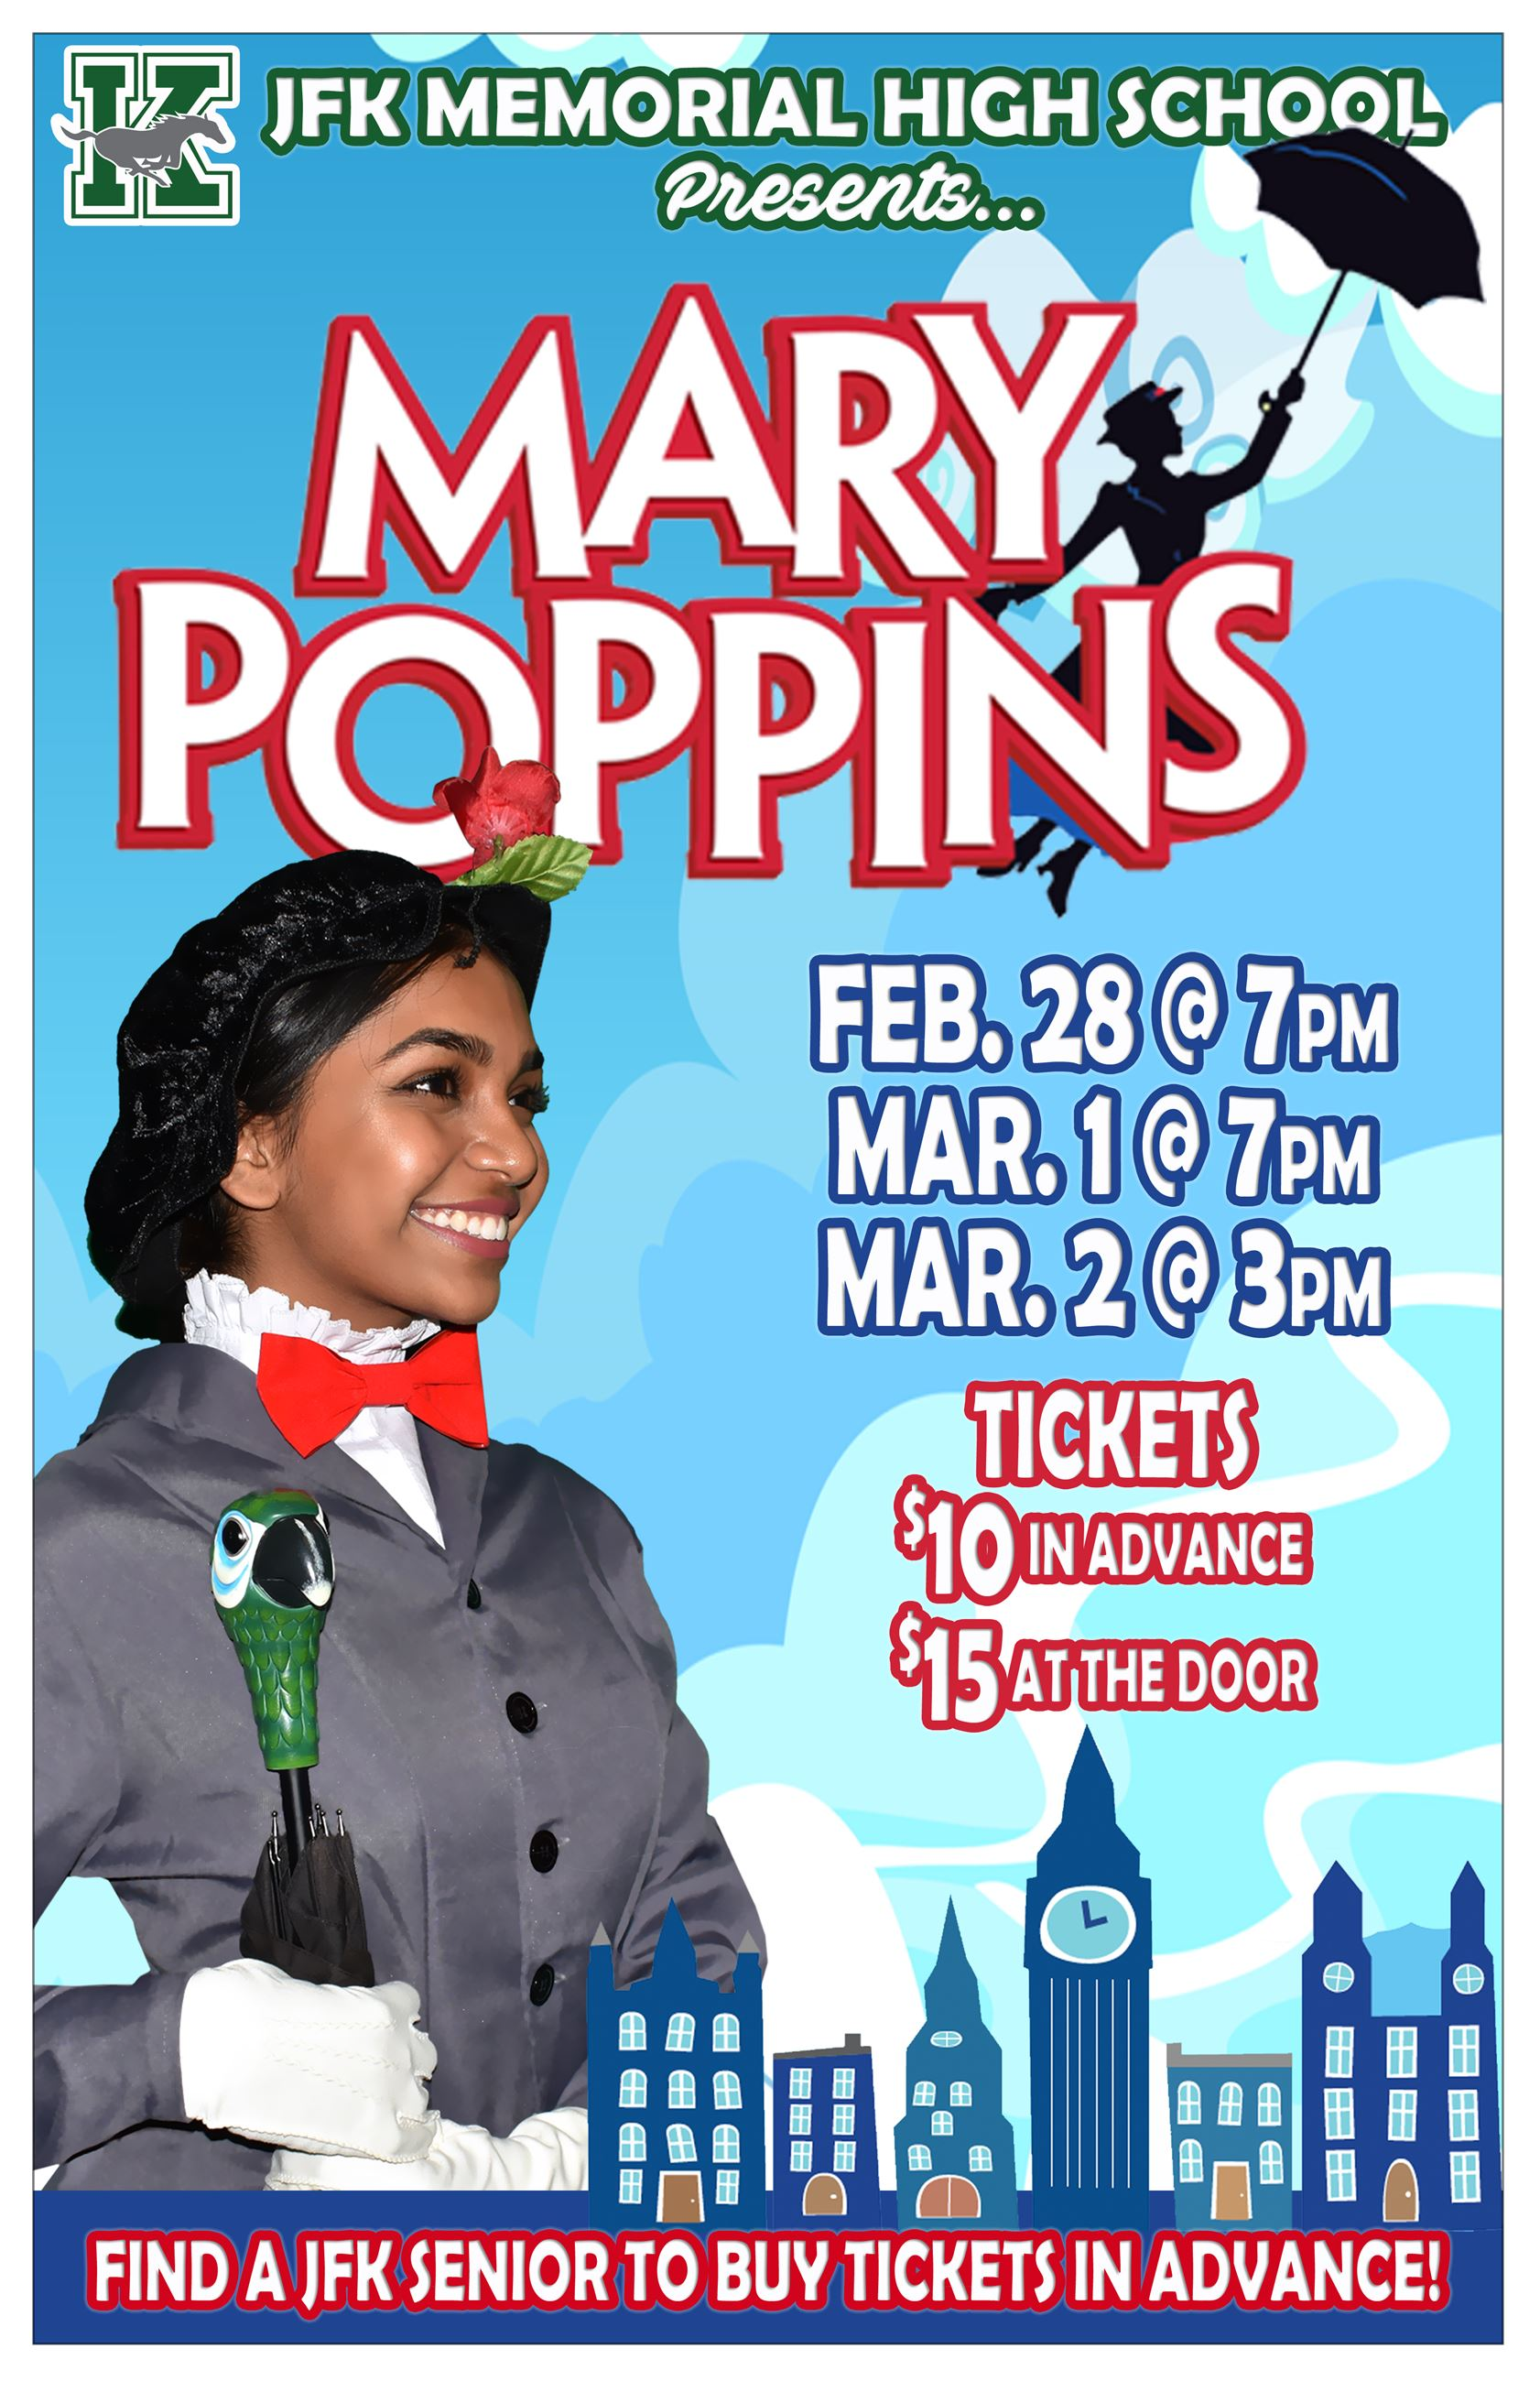 JFK Presents_Mary Poppins - 2-28-19 and 3-1-2-19